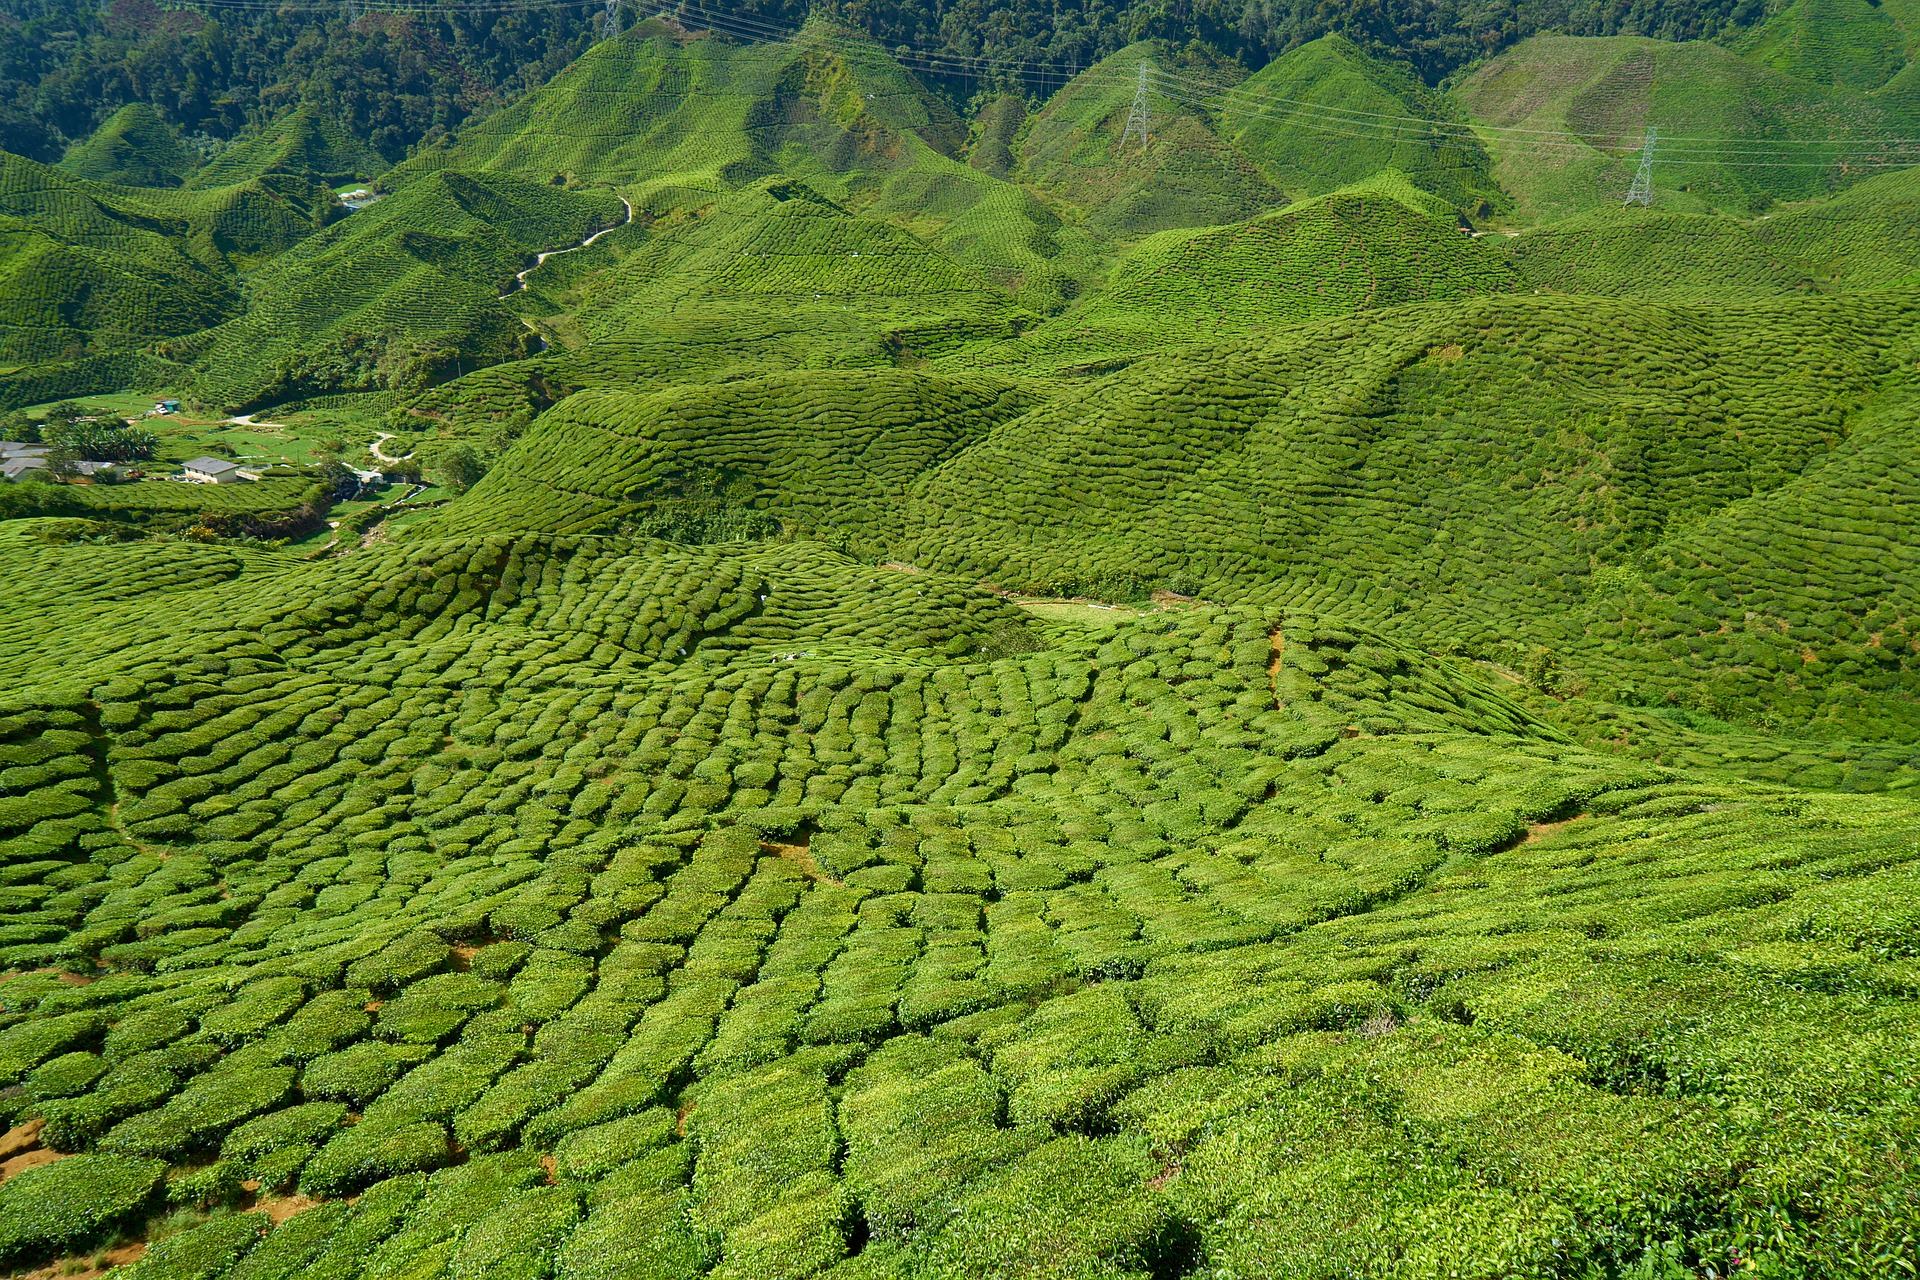 Vista of tea plantation